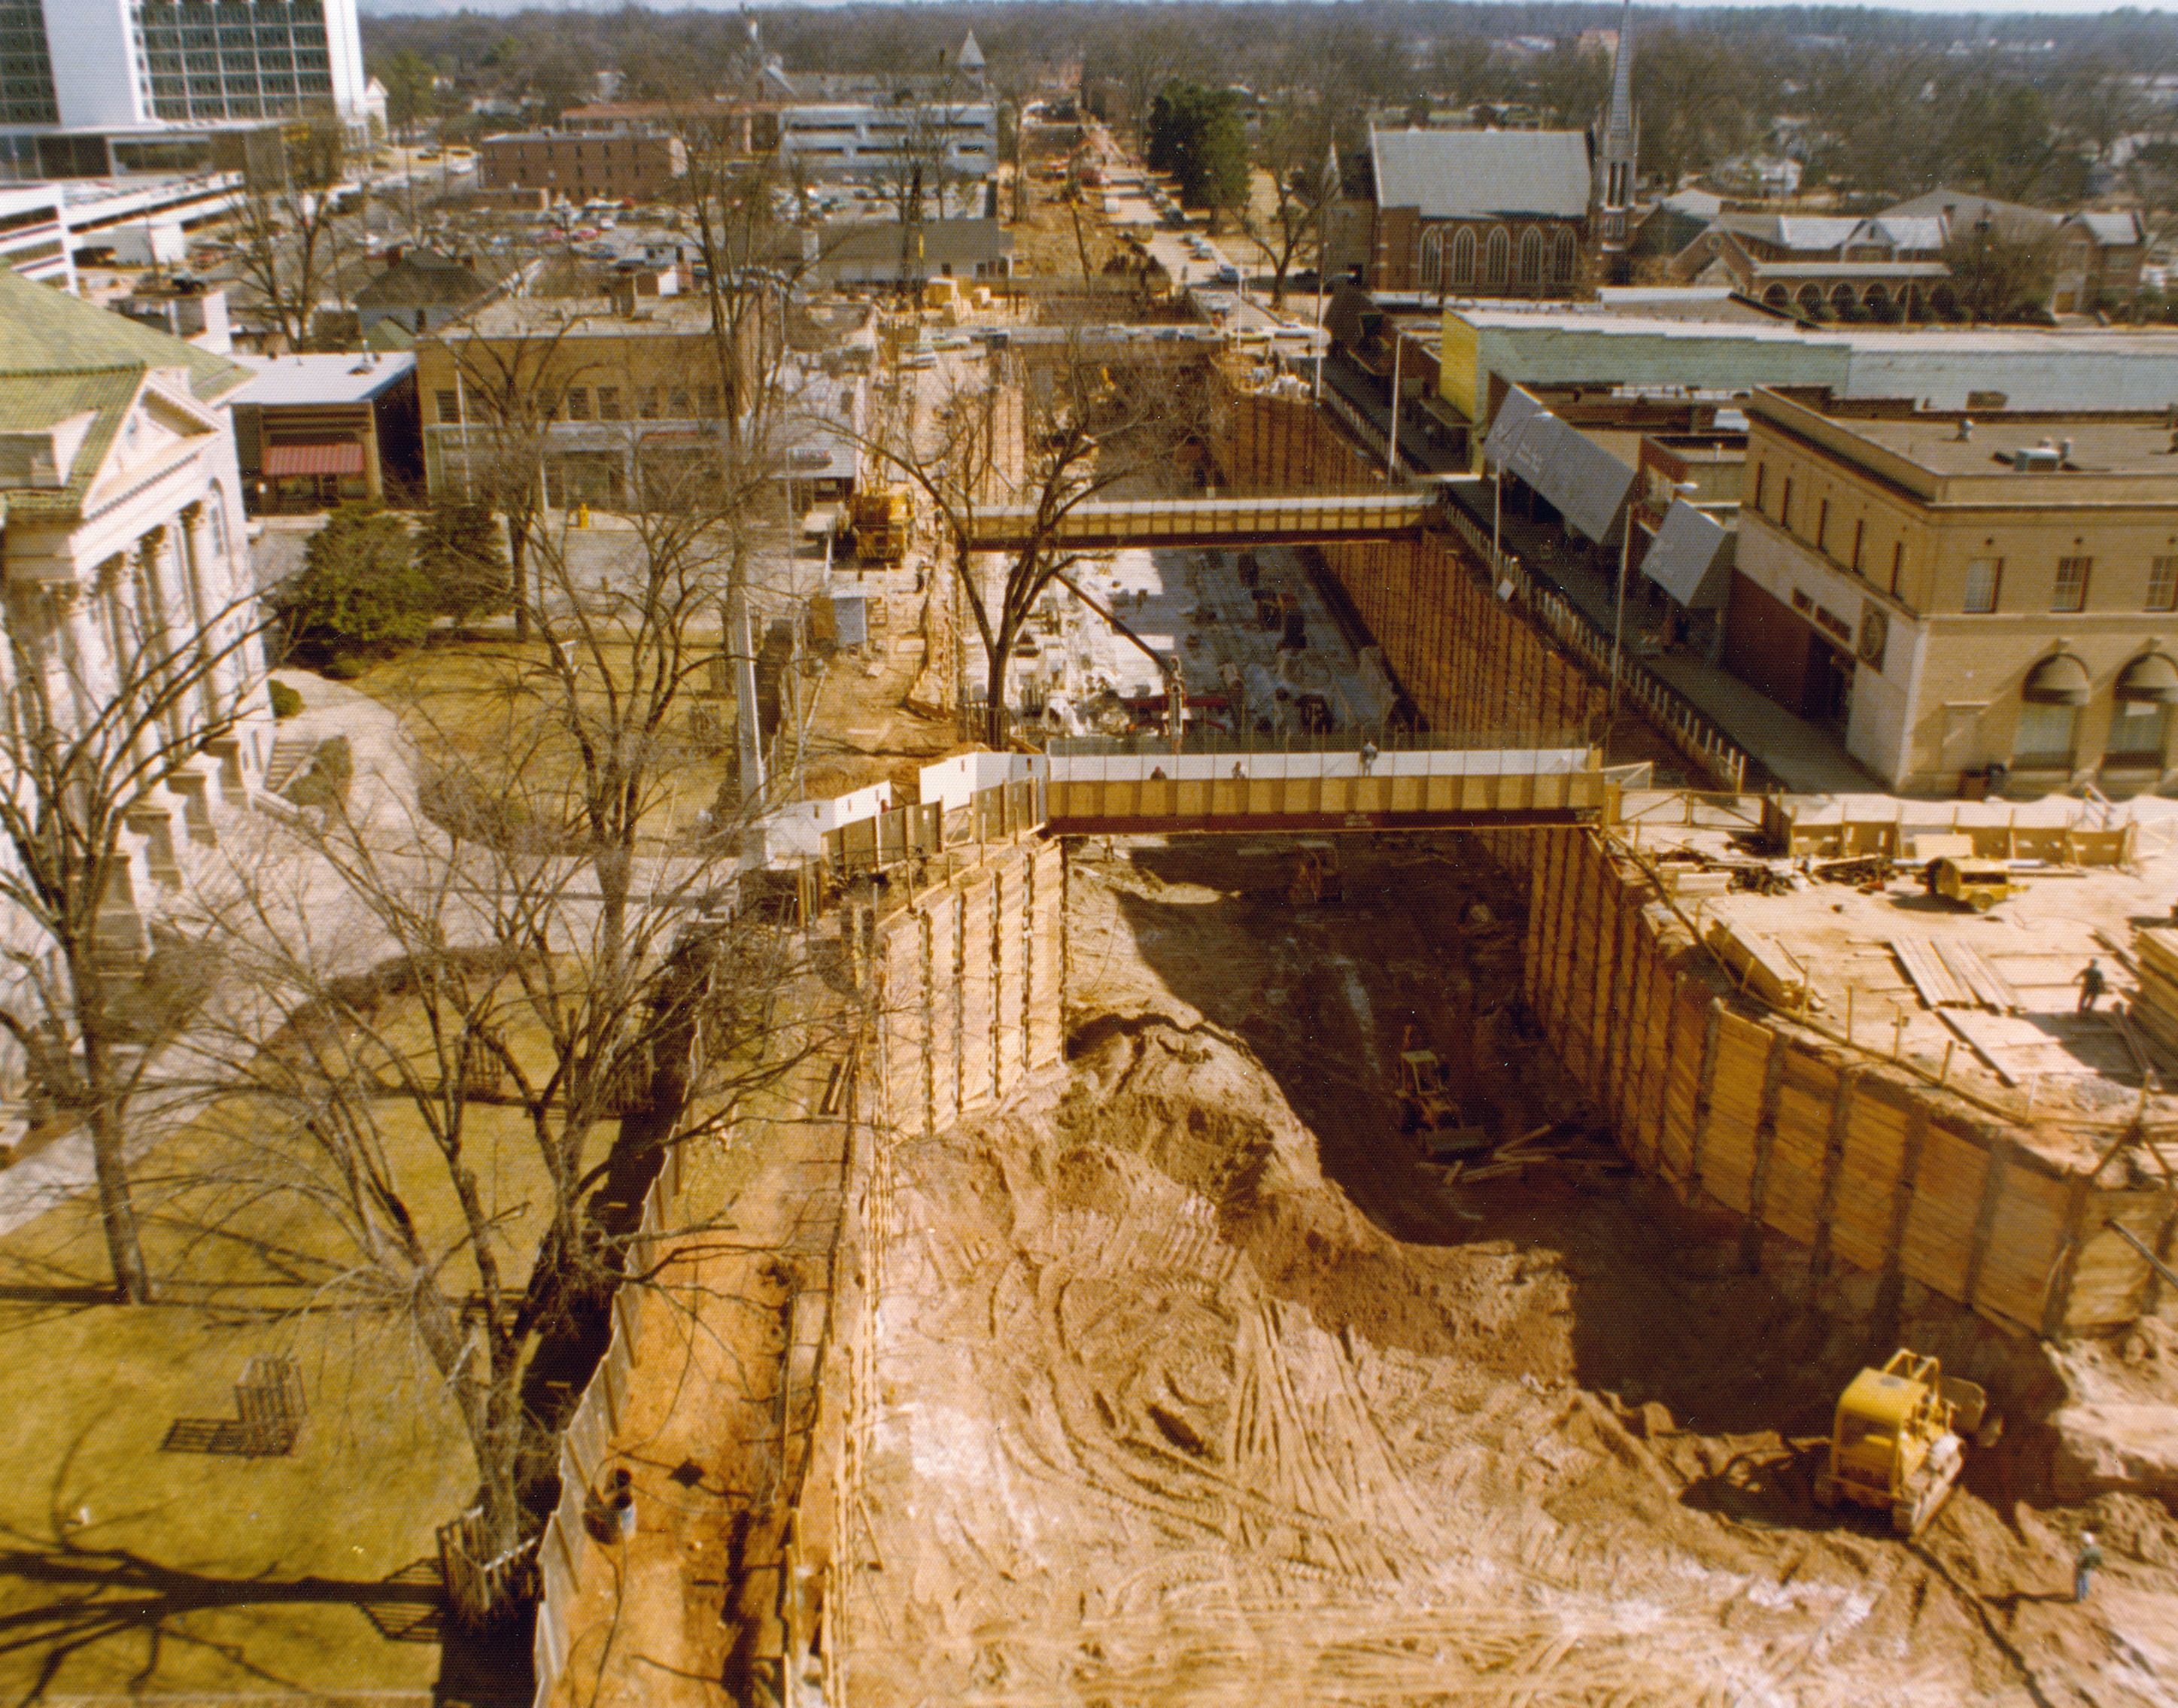 Construction of the MARTA Decatur Station in downtown Decatur